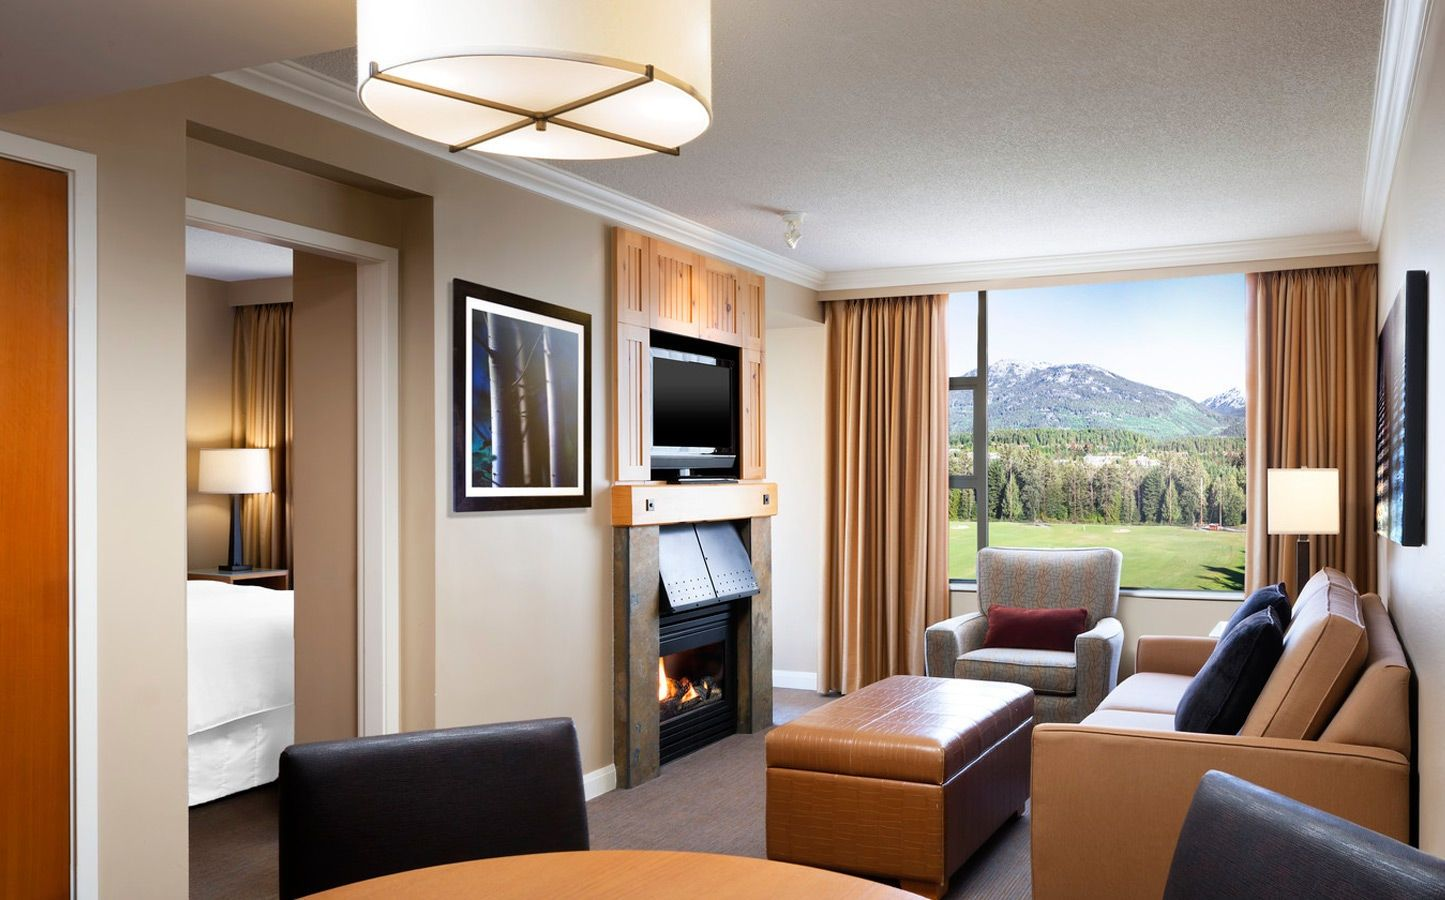 One Bedroom Suites The Westin Resort  Spa Whistler - One bedroom suite